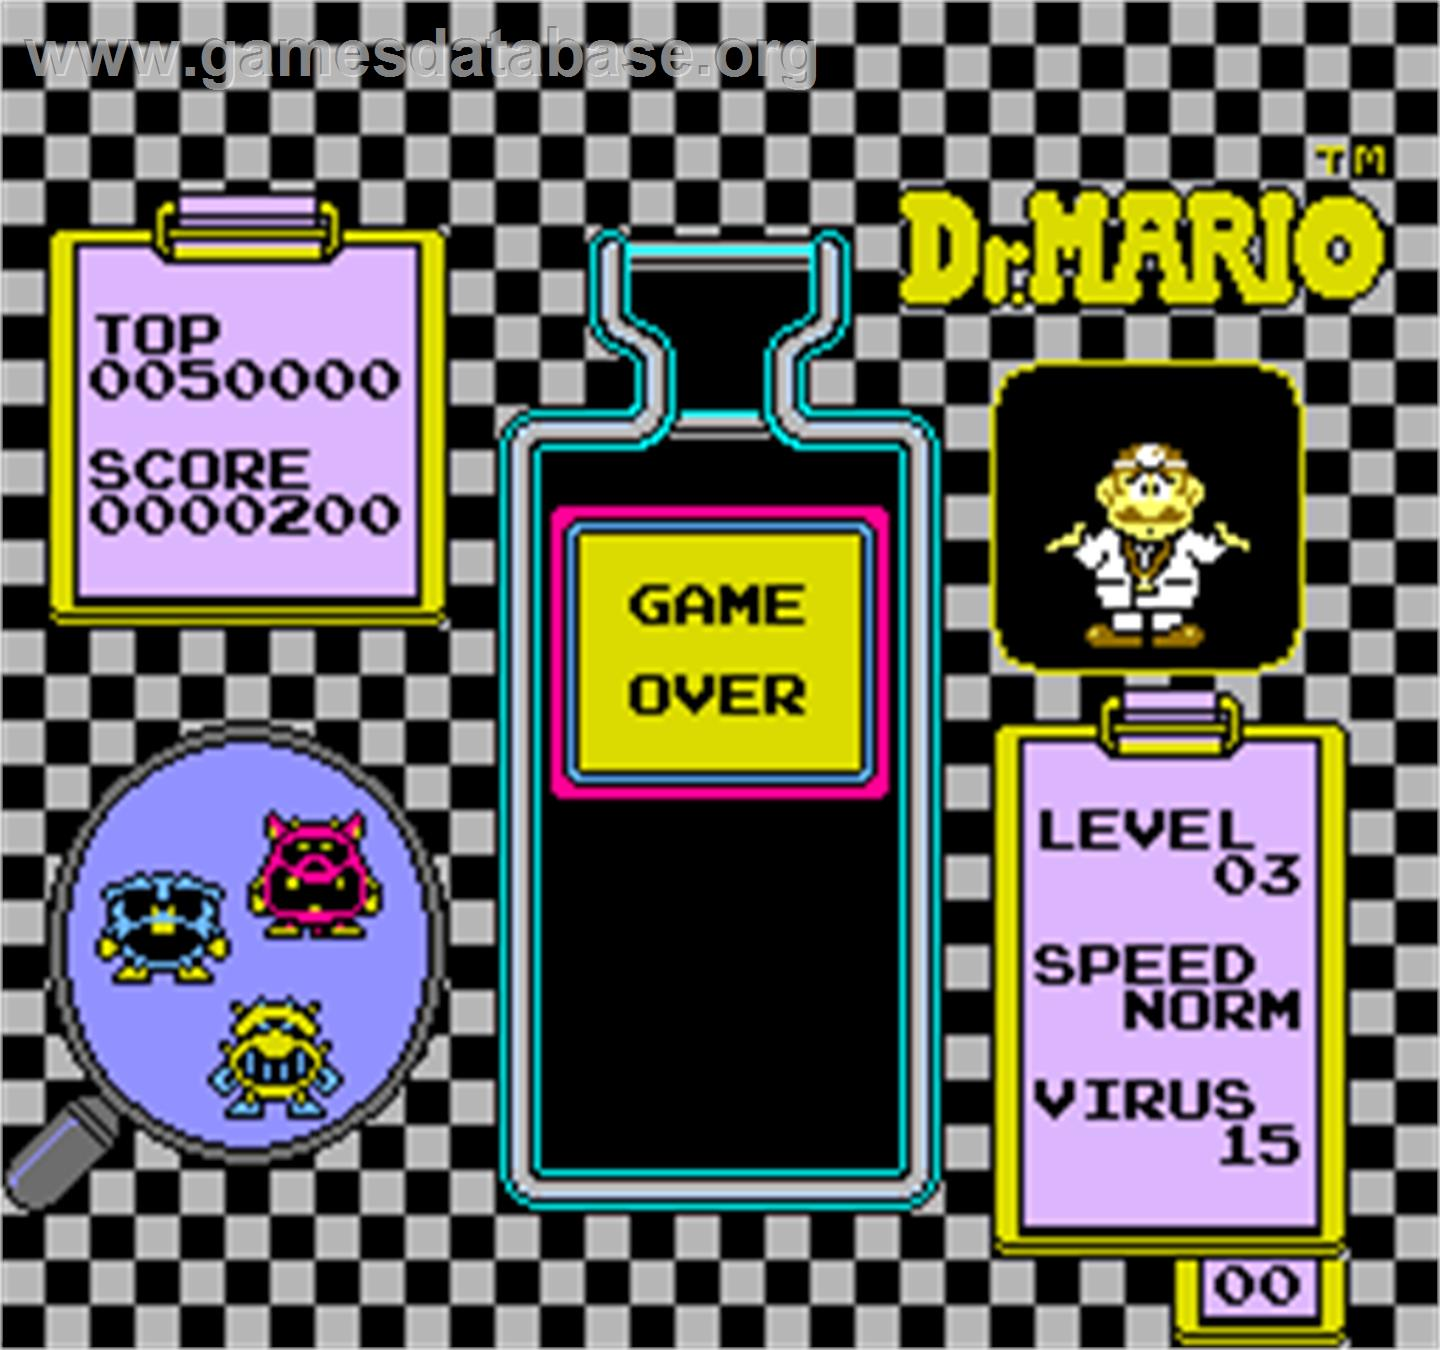 Vs. Dr. Mario - Arcade - Artwork - Game Over Screen